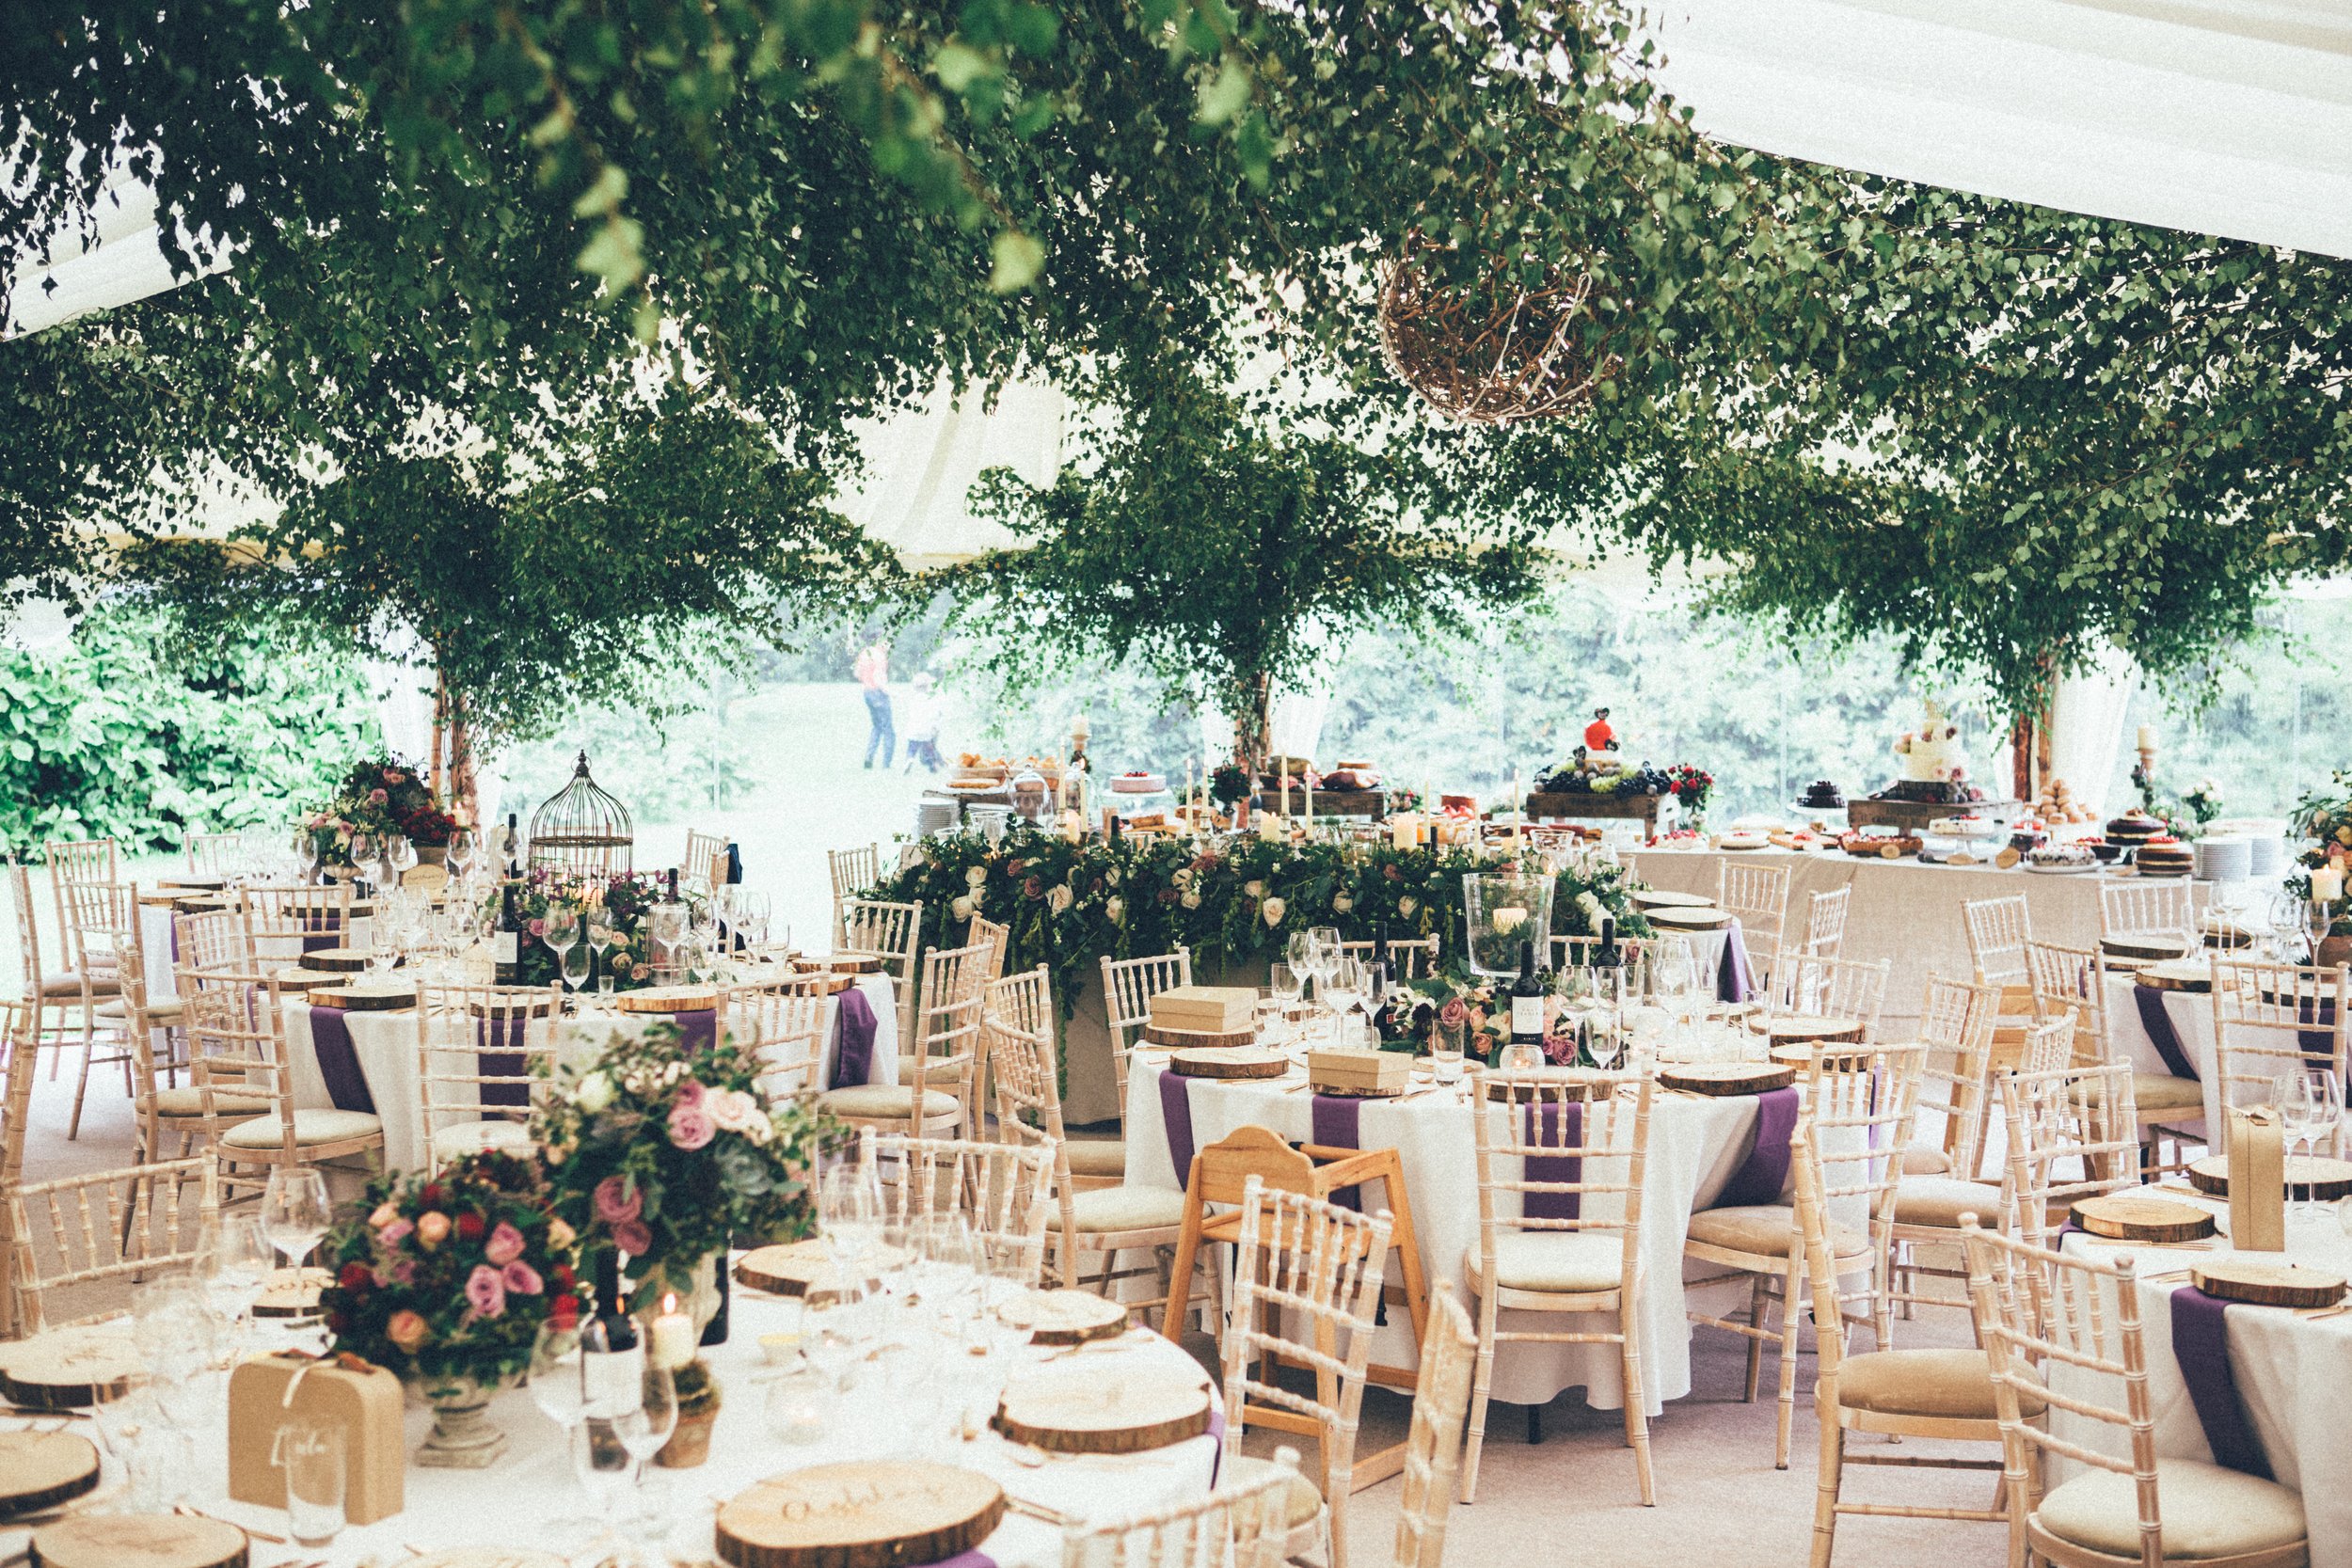 For the ceiling I wanted a lot of tree canopy bringing the outdoors indoors,Claire created this by layering birch foliage from the centre of the ceiling outwards creating trees at the edges of the marquee.